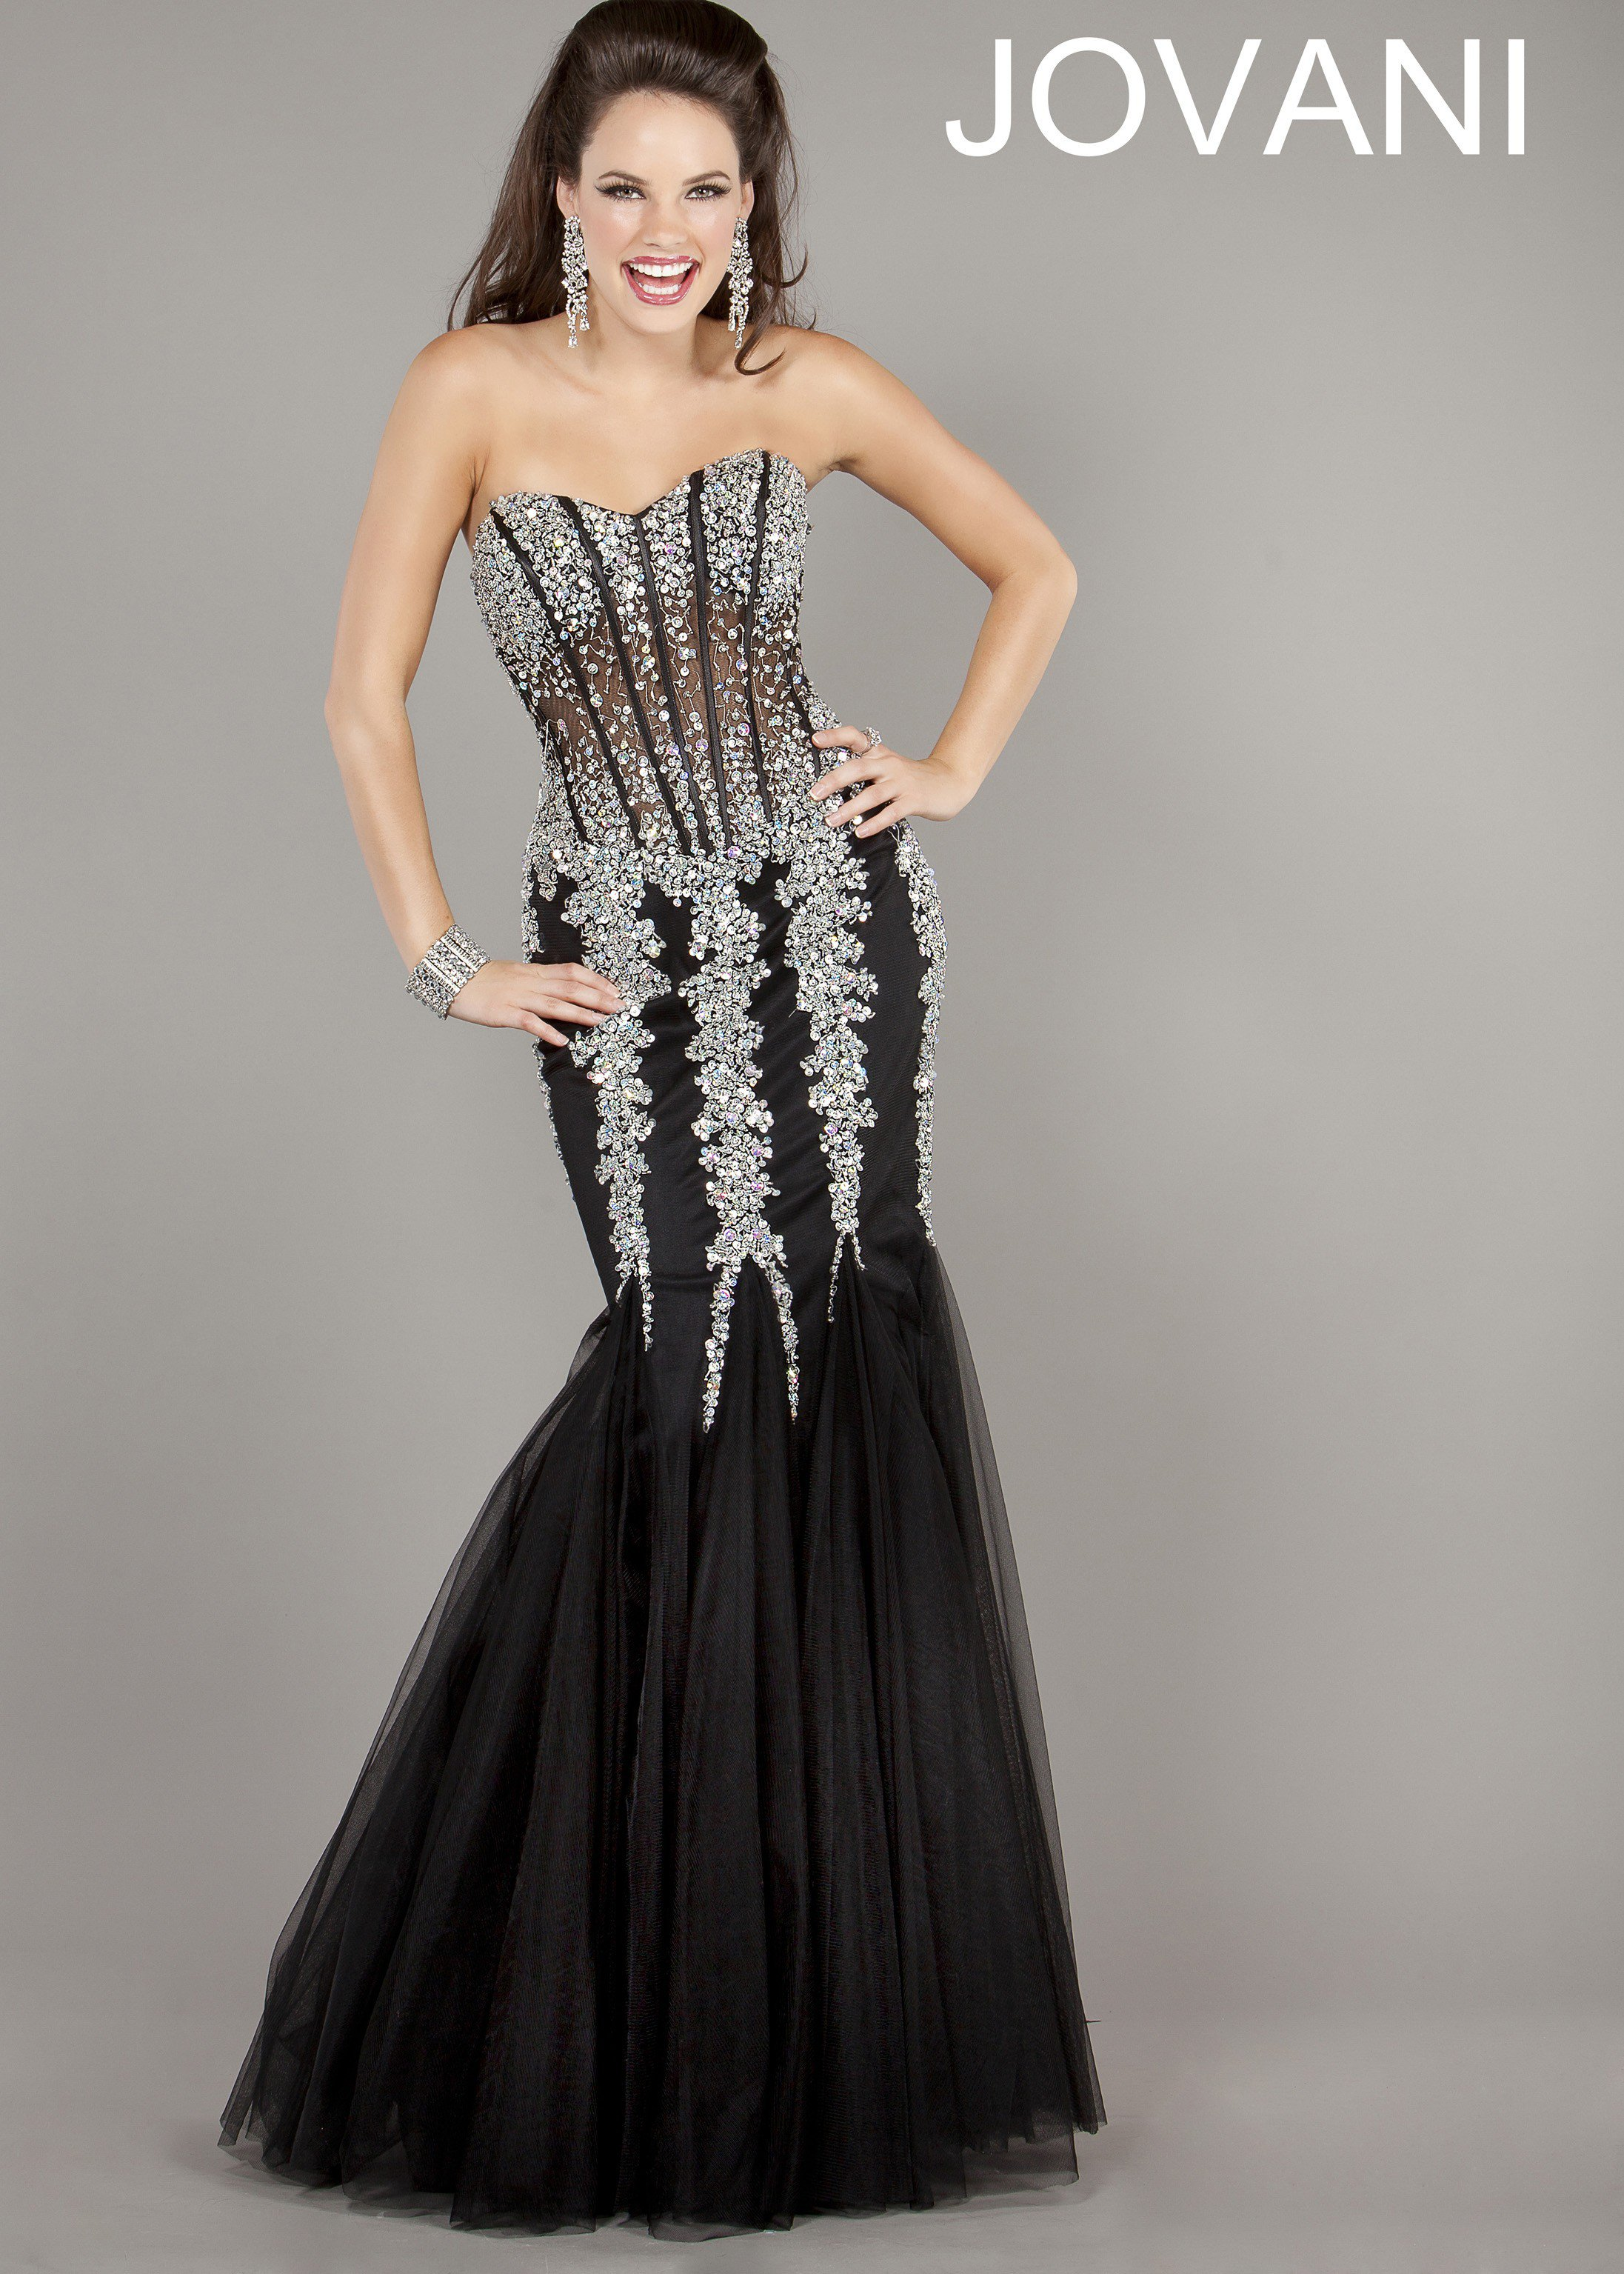 Jovani 5908 Black/Silver Strapless from Rissy Roo's | Prom - photo #14